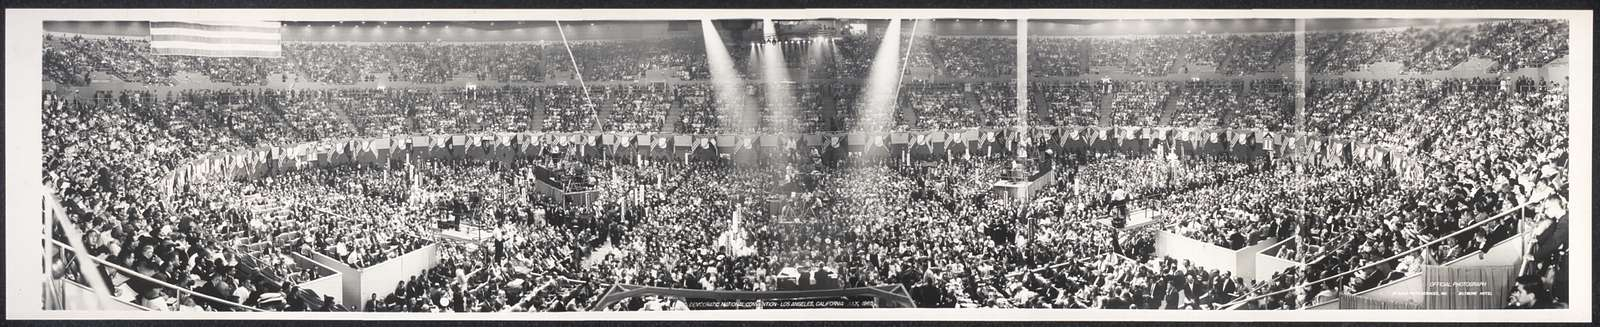 Democratic National Convention, Los Angeles, California, July, 1960